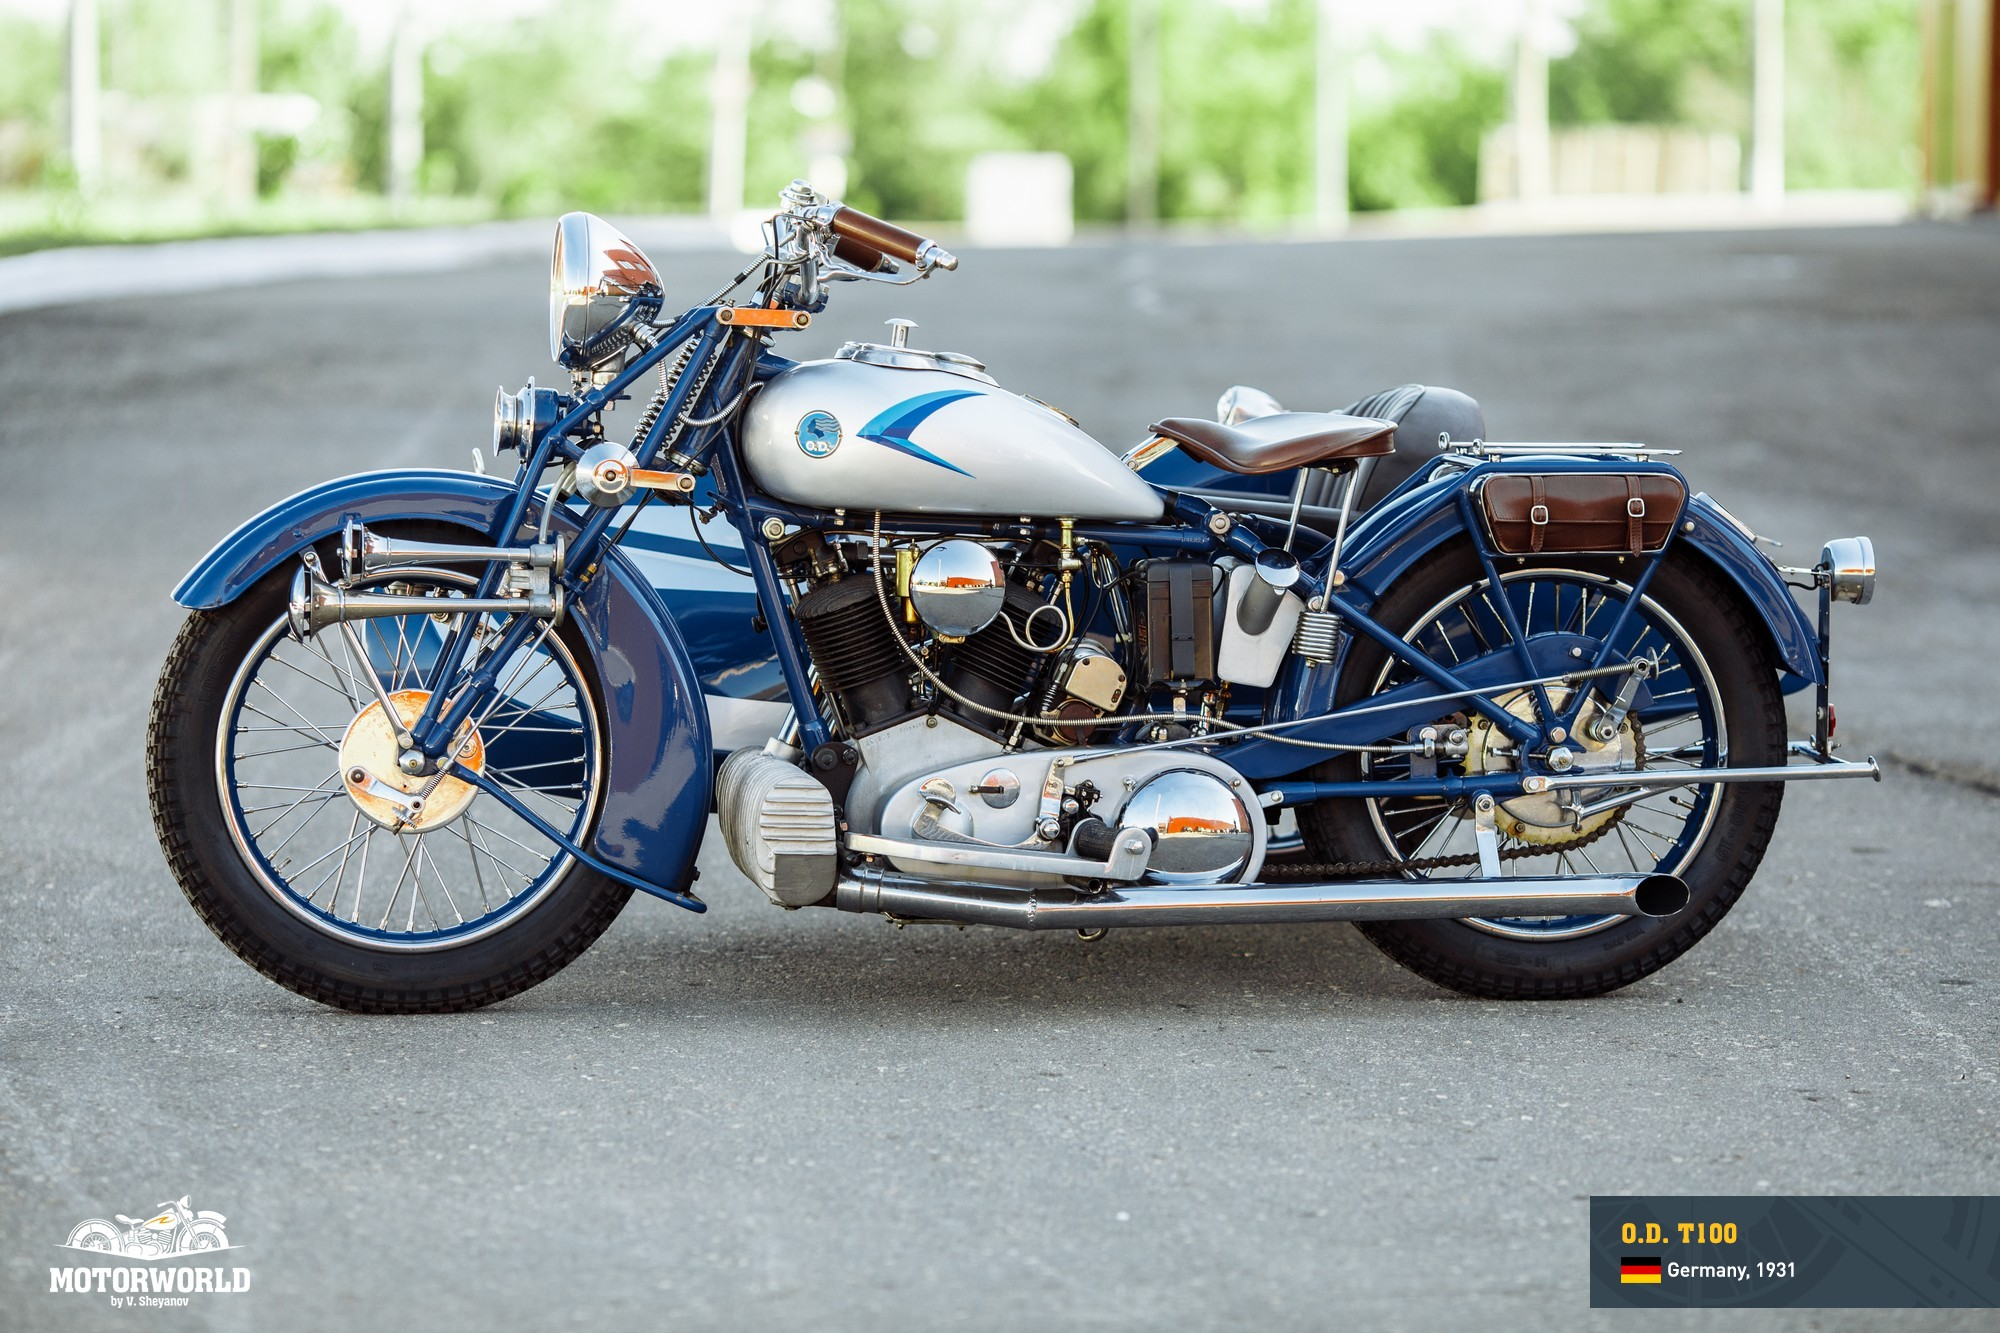 1931, OD T100 motorcycle